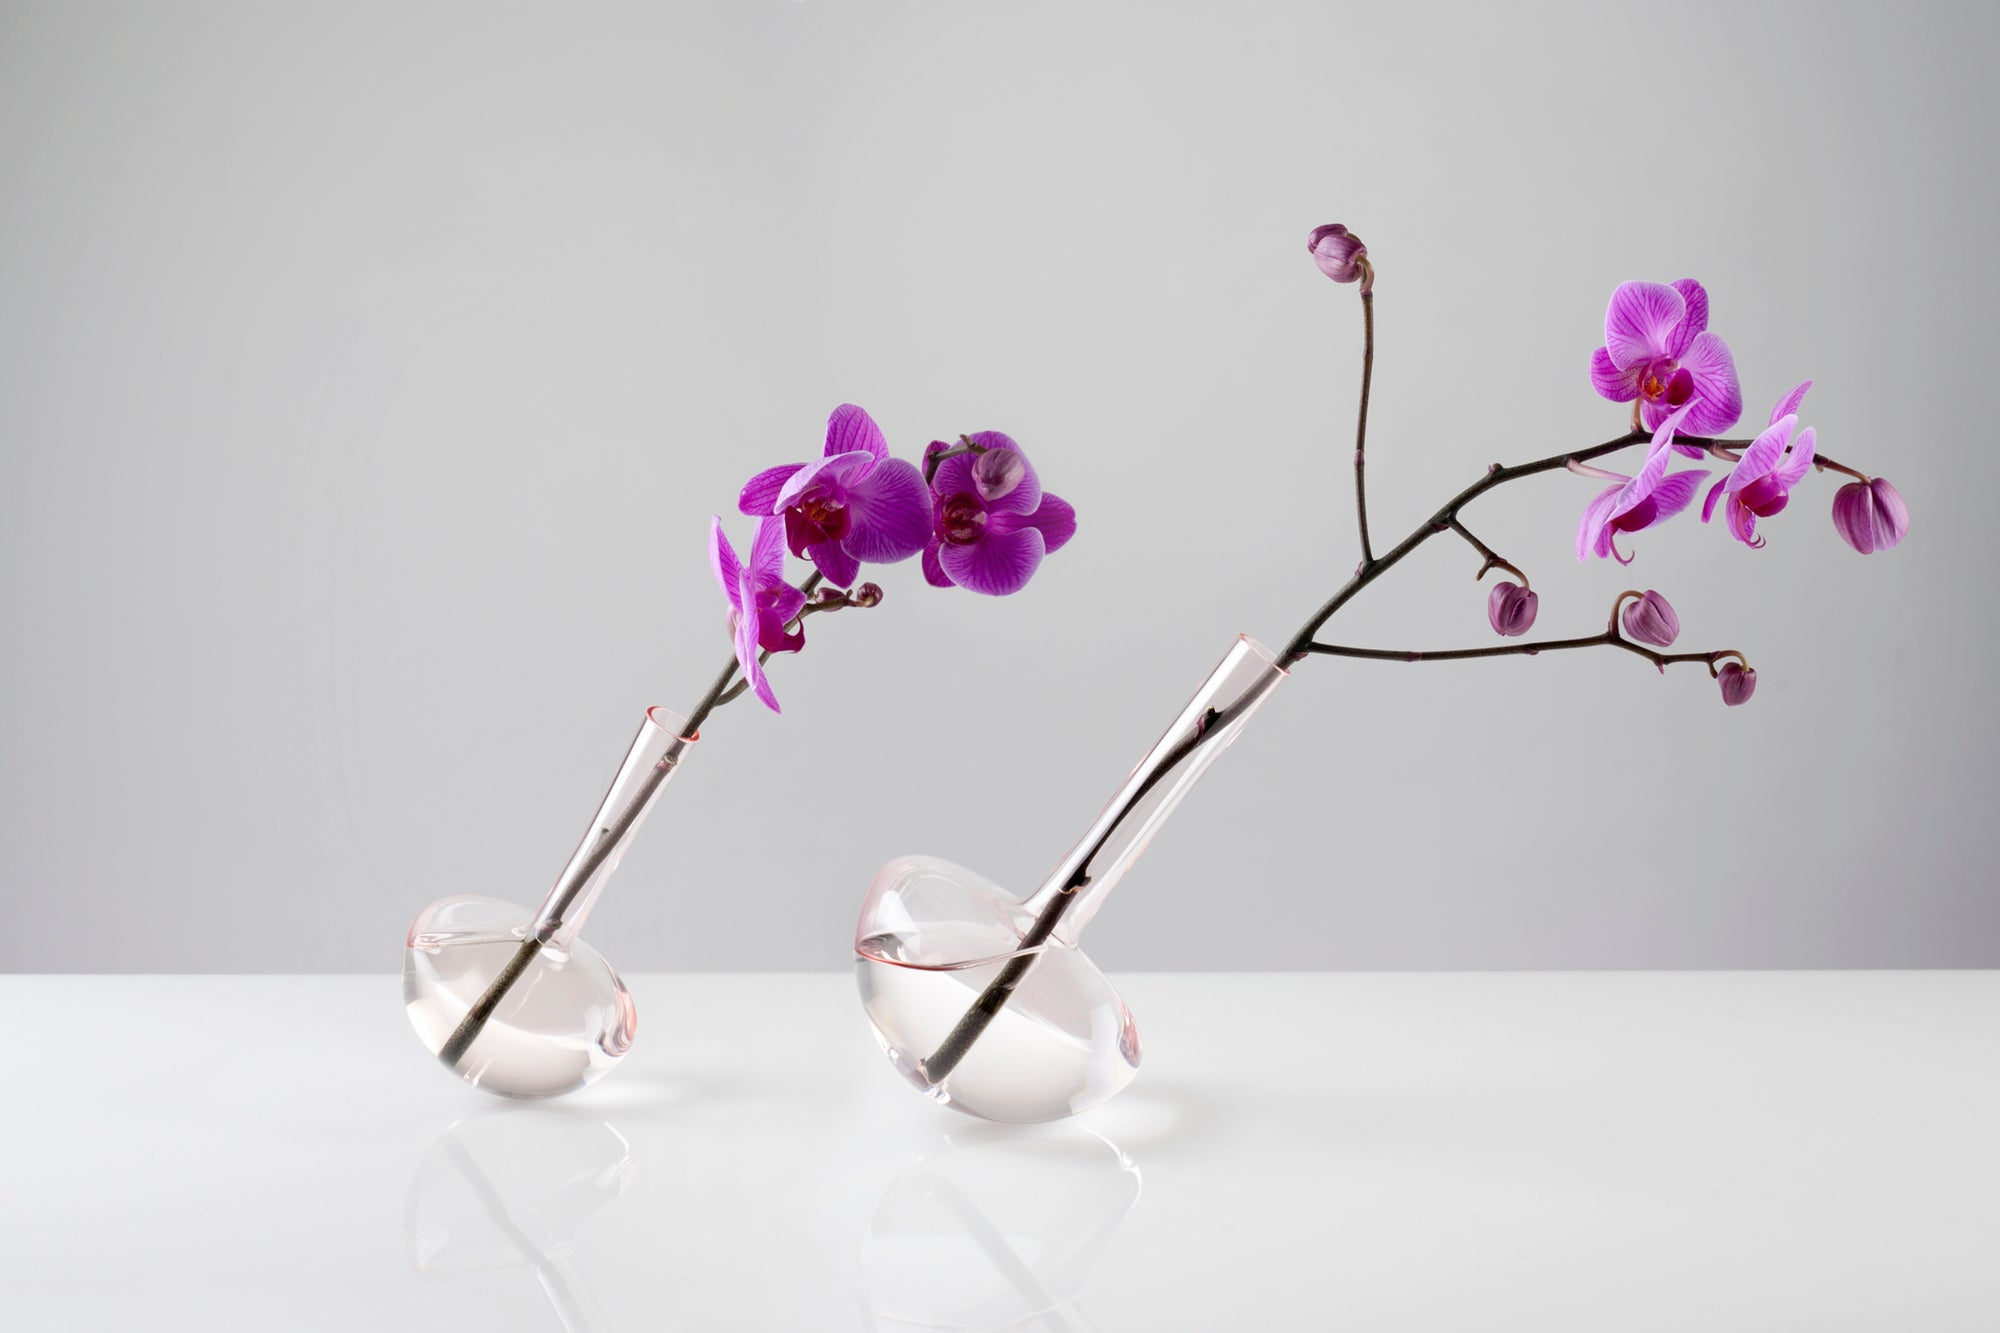 GAUGE vase (Stems, with Single Stem) - Photograph by John R Ward